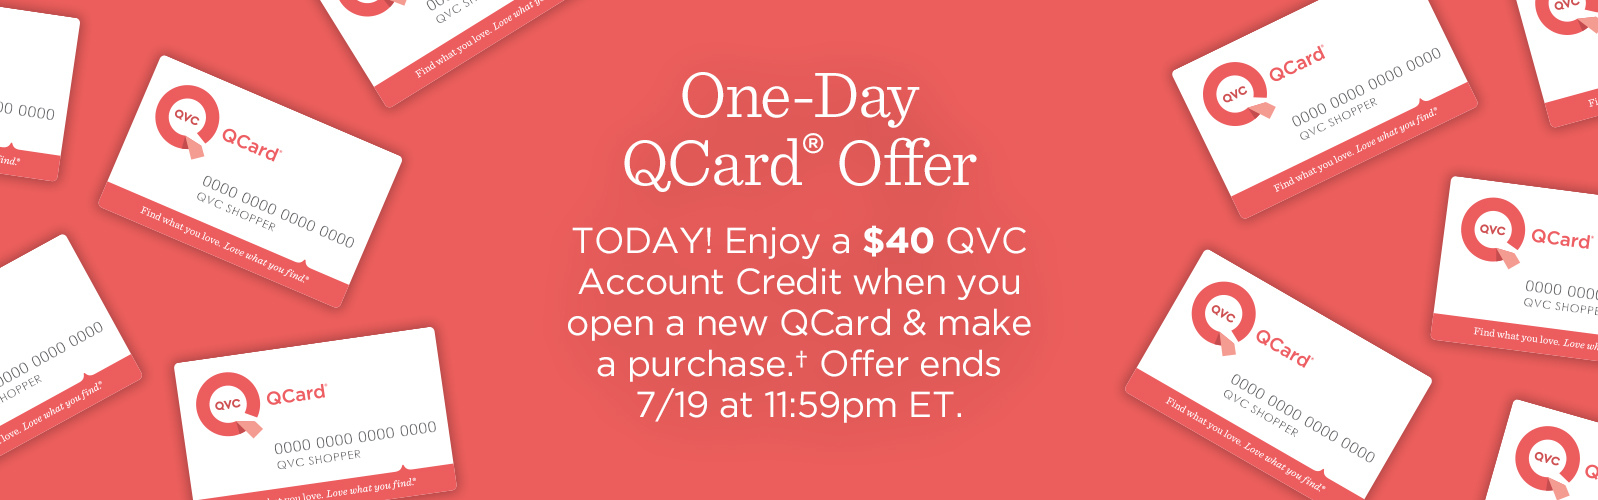 One-Day QCard® Offer TODAY! Enjoy a $40 QVC Account Credit when you open a new QCard & make a purchase.† Offer ends 7/19 at 11:59pm ET.Special QCard® Offer Don't have a QCard? Enjoy a $15 QVC Account Credit when you open a new QCard & make a purchase.† Offer ends 7/31 at 11:59pm ET.